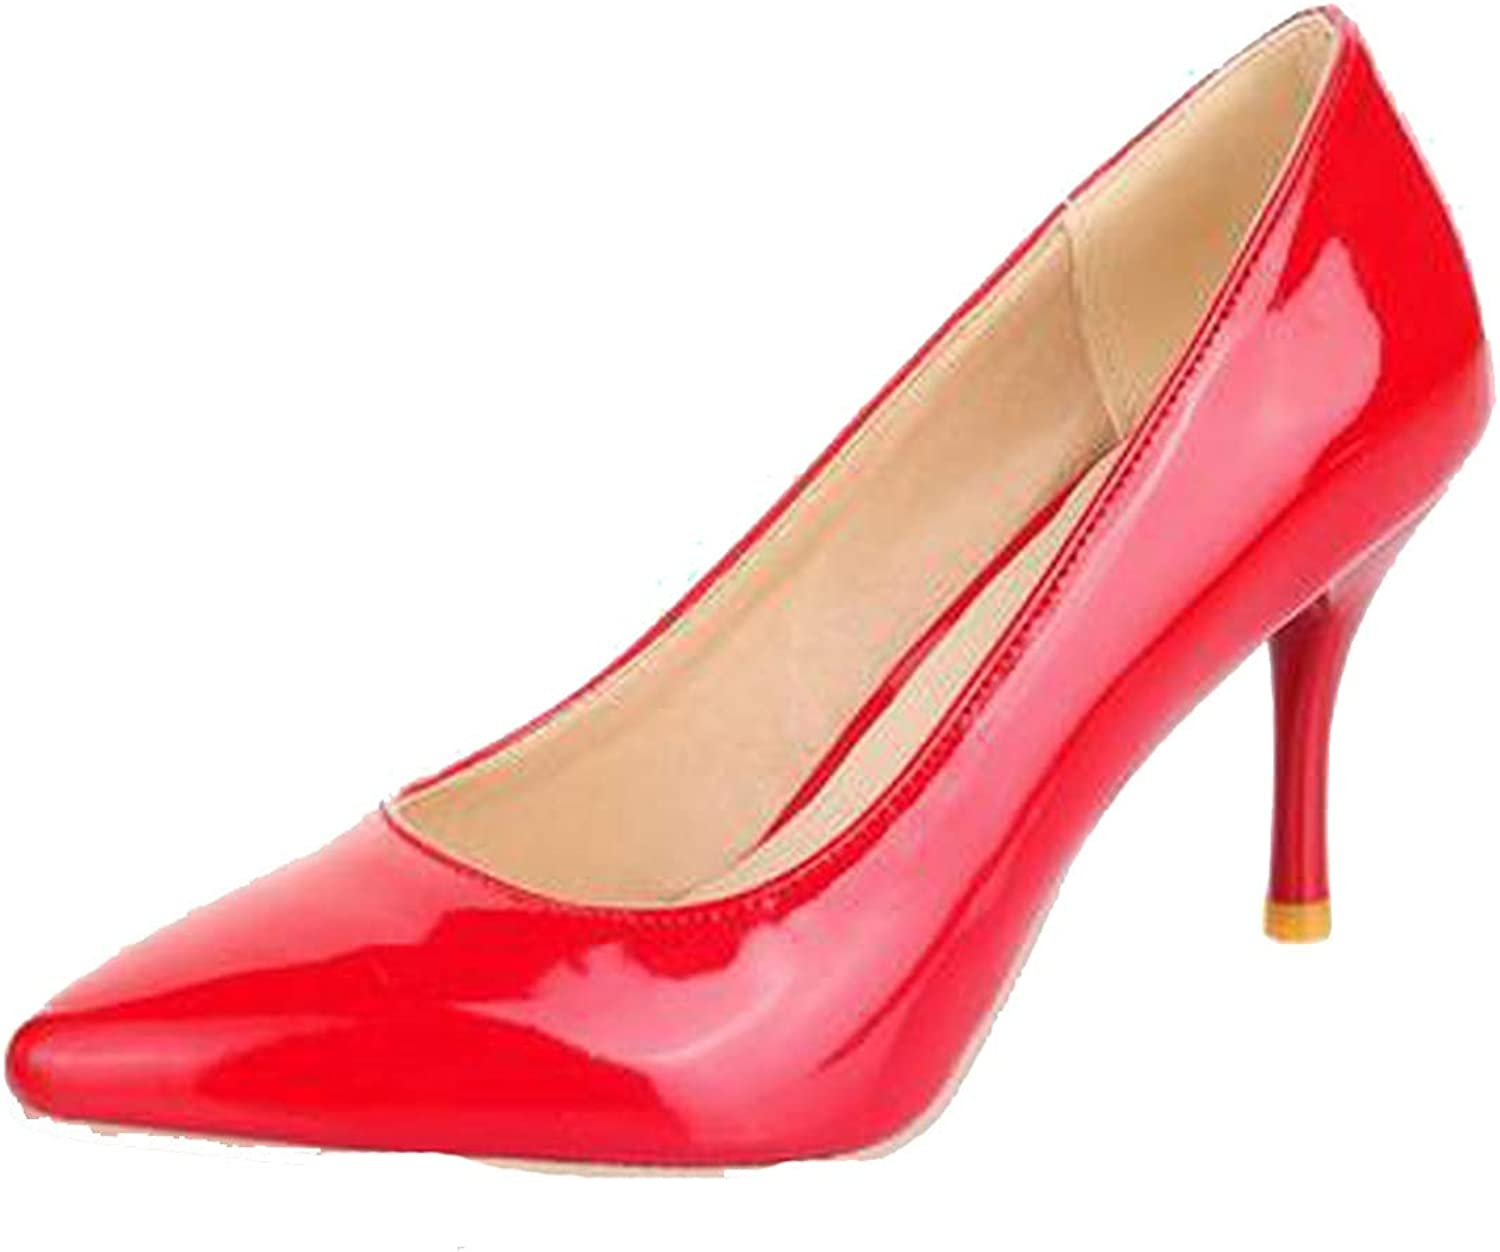 High Heels Women Pumps Thin Heel Classic White red Nude Beige Sexy Ladies Wedding shoes,Red,15